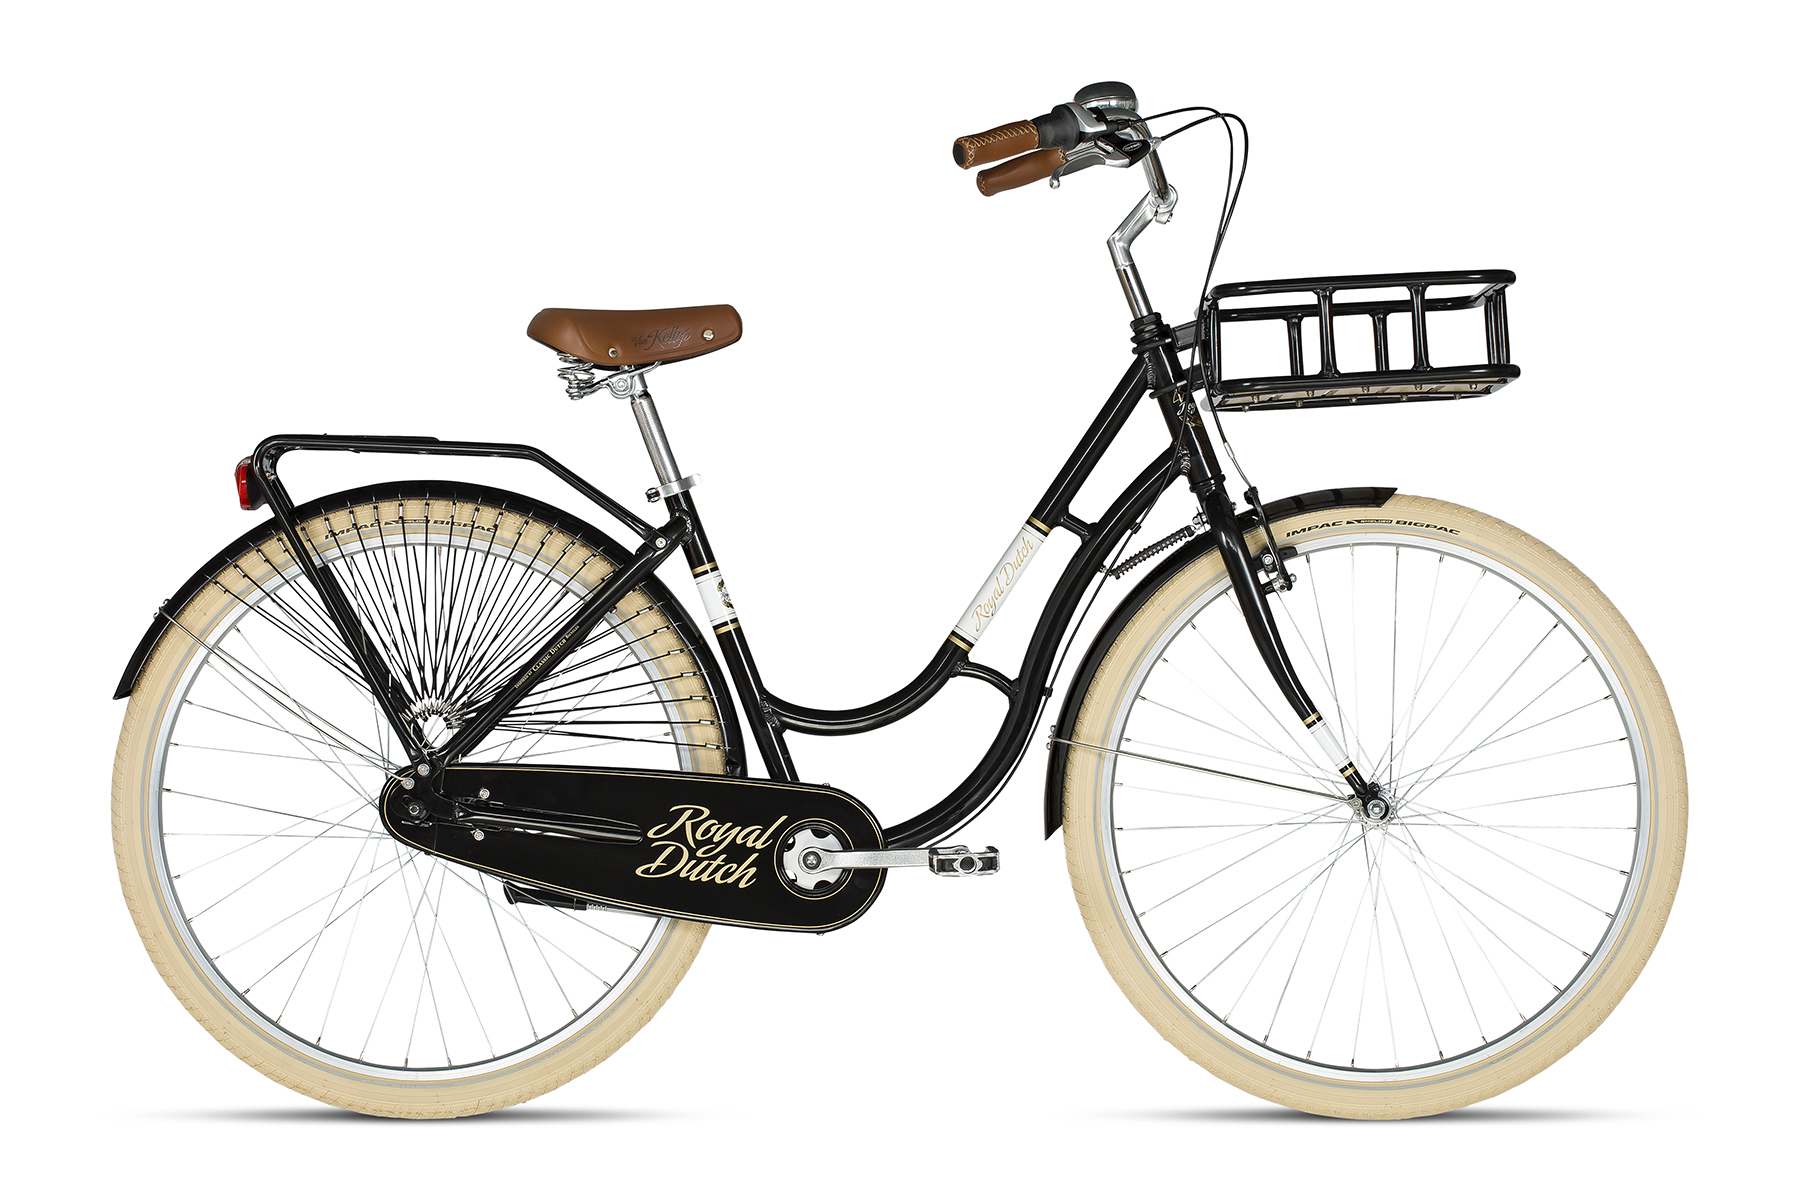 K18202 KELLYS Royal Dutch Black - Fahrradhaus Haske